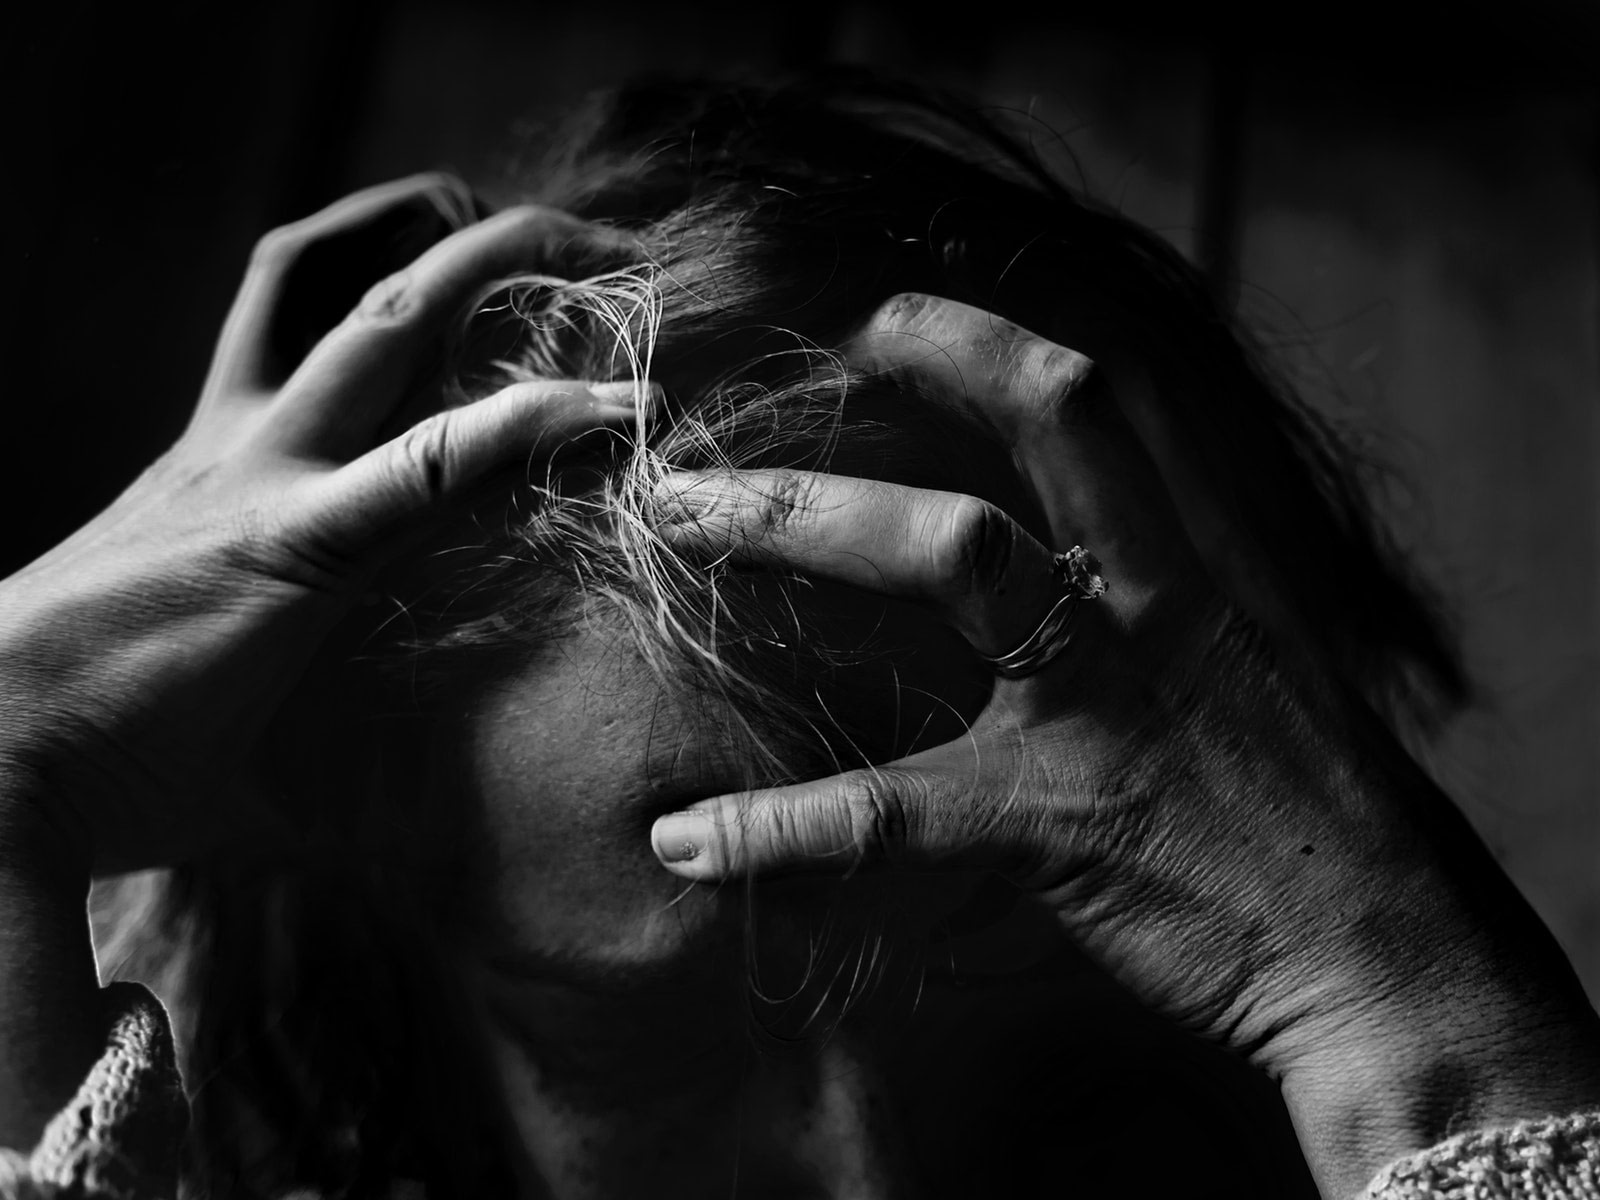 5 Things To Know As The Parent Of An Addict